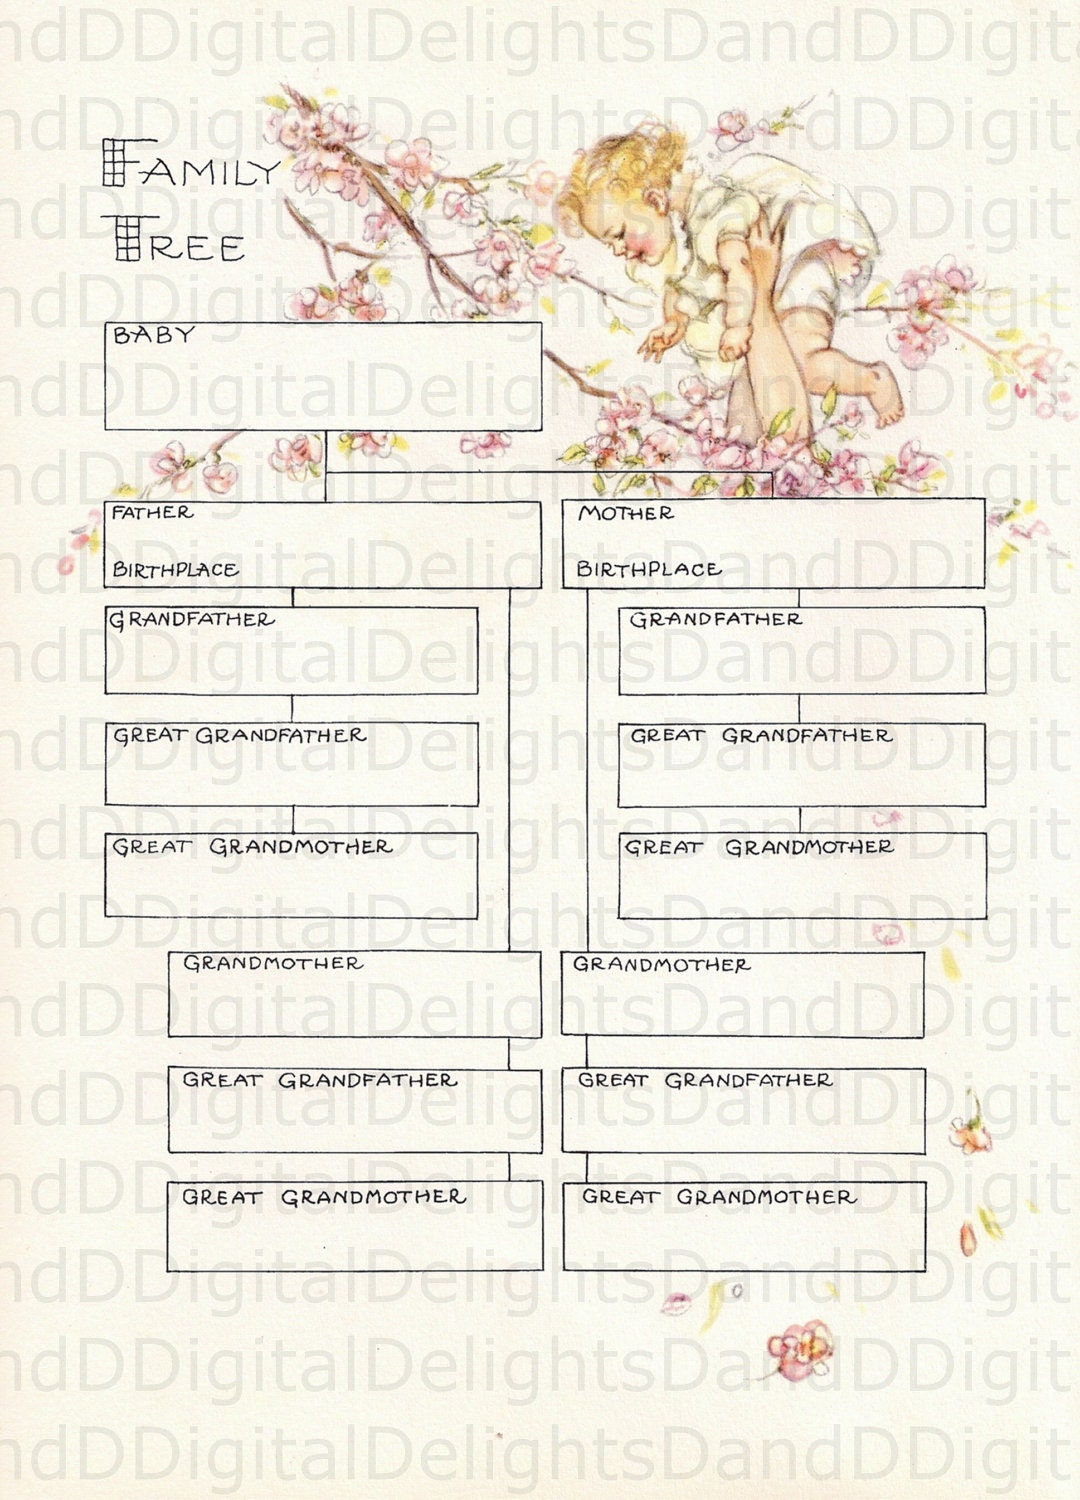 Gorgeous Baby S Family Tree Color Illustration And Text